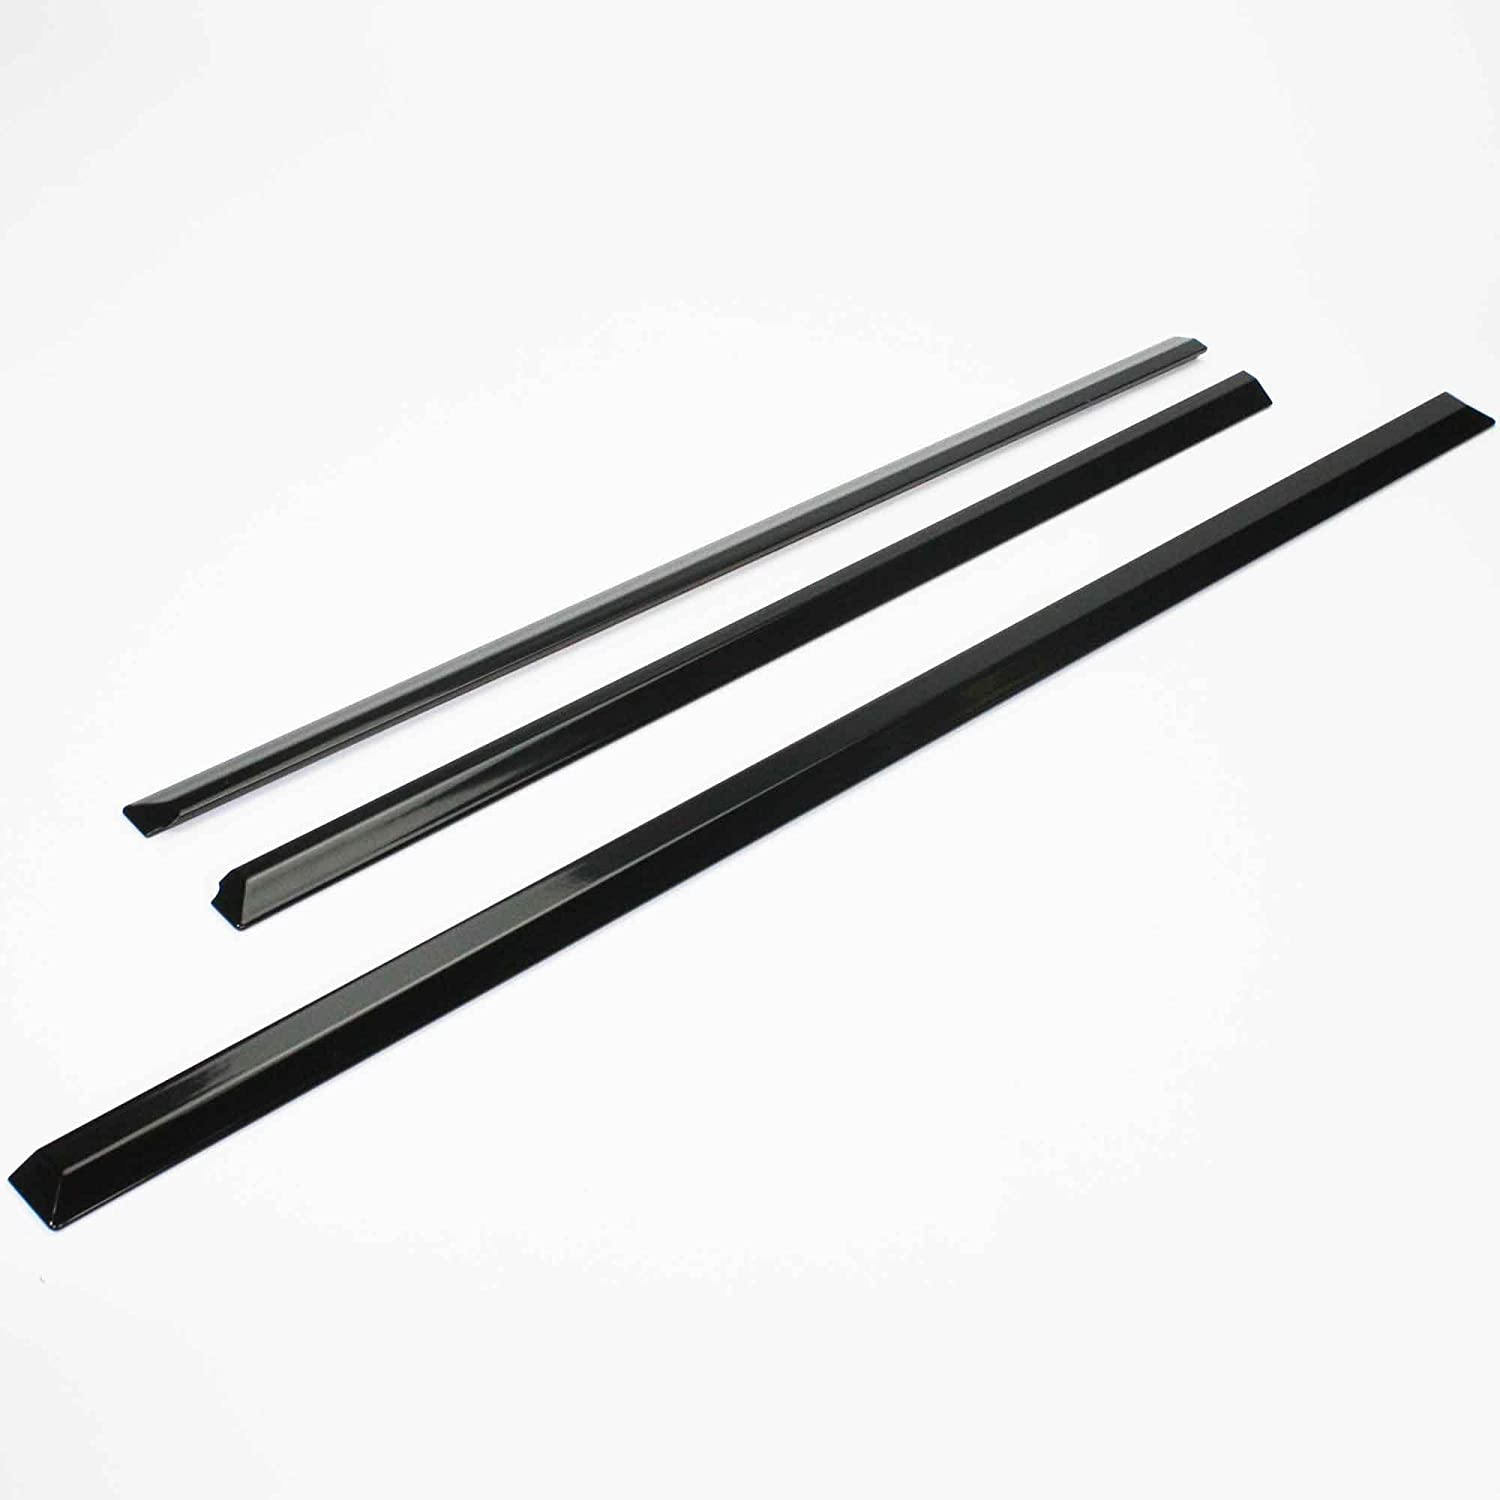 W10675026 Whirlpool Appliance Trim-Cktop